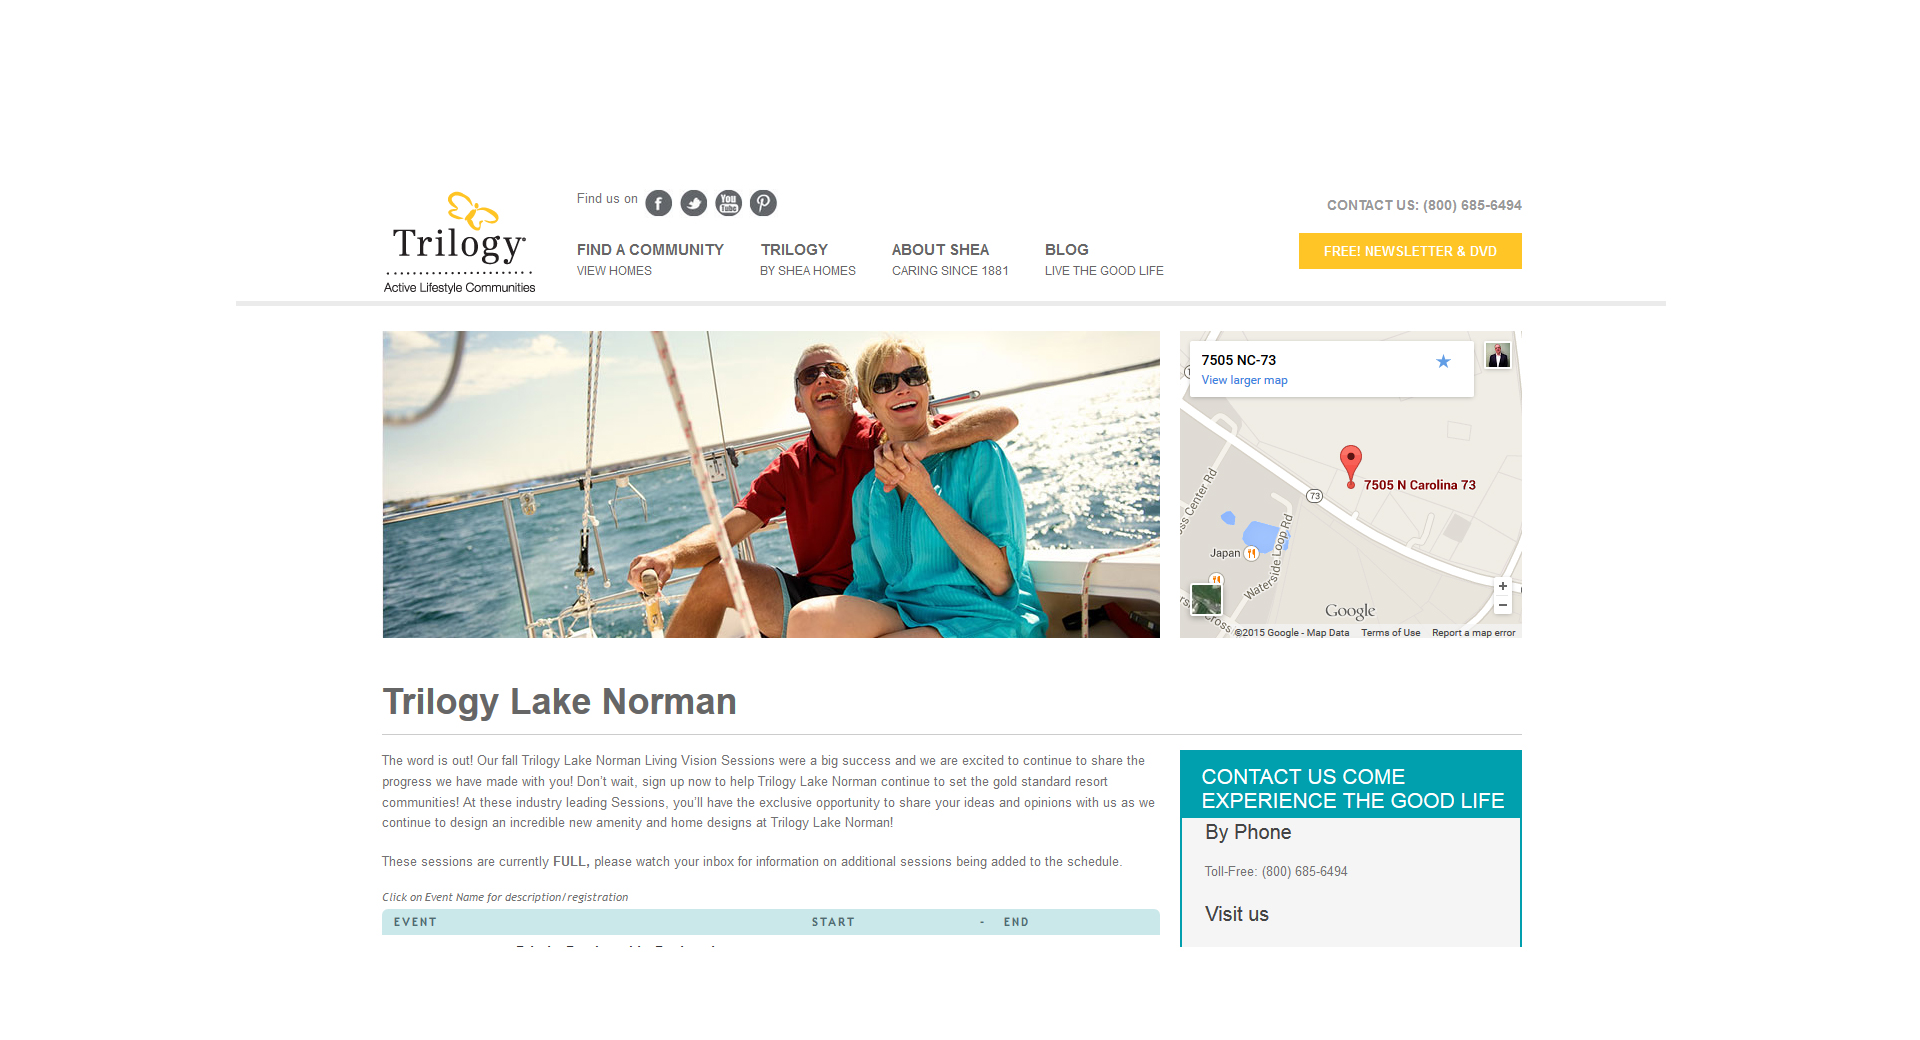 Trilogy Life - Real Estate Website Development, eCommerce Development by CCP Web Design